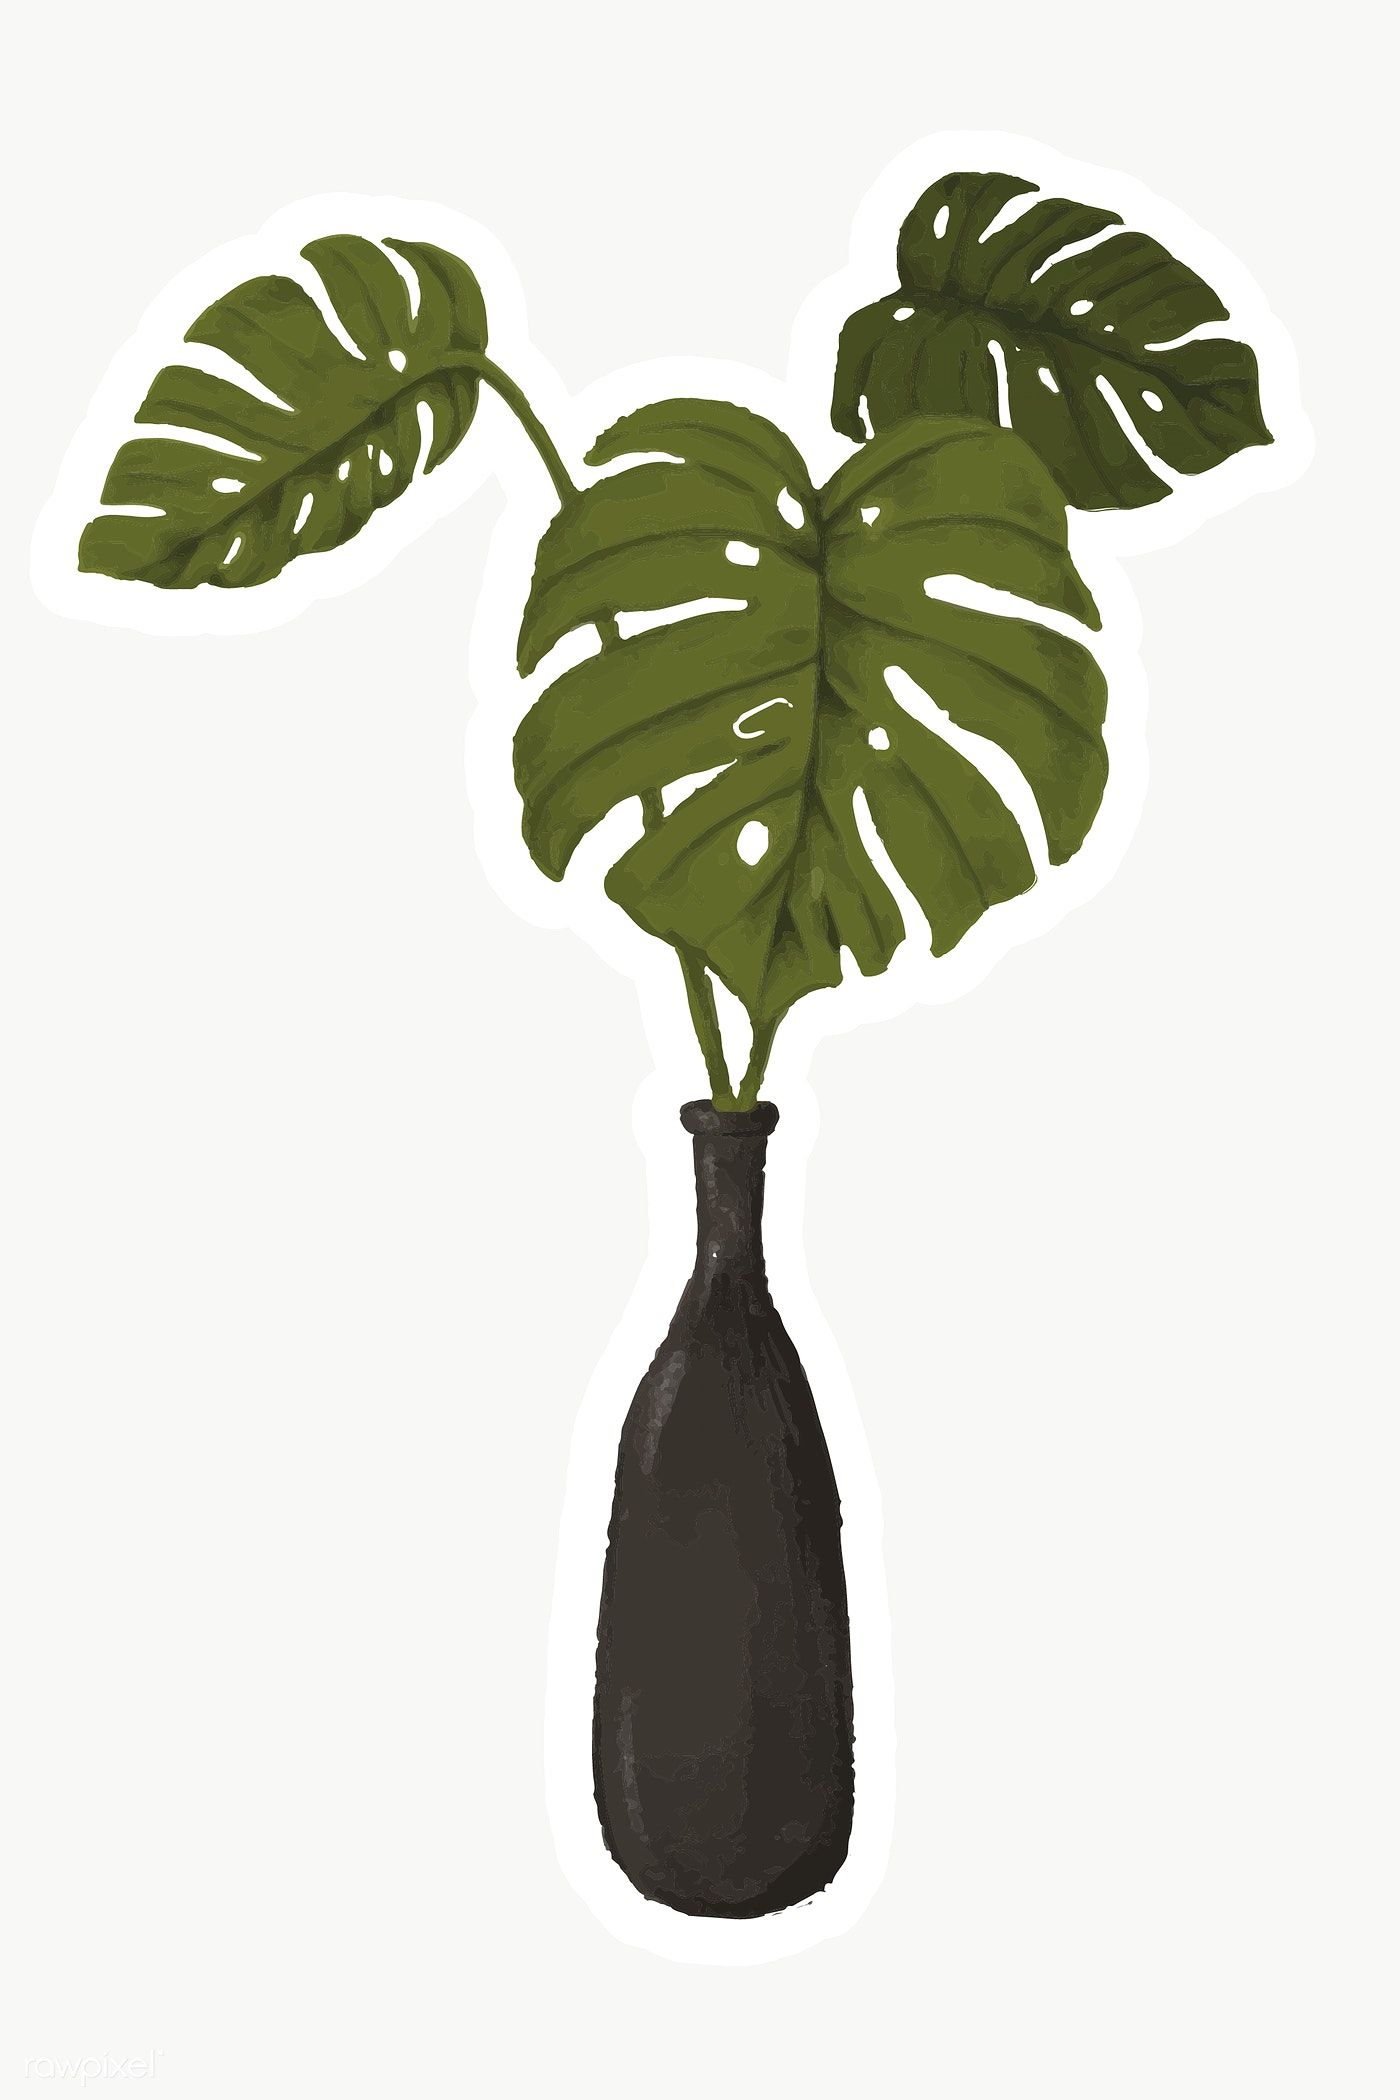 Swiss Cheese Plant In A Vase Sticker Premium Image By Rawpixel Com Noon Plant Illustration Swiss Cheese Plant Philodendron Plant